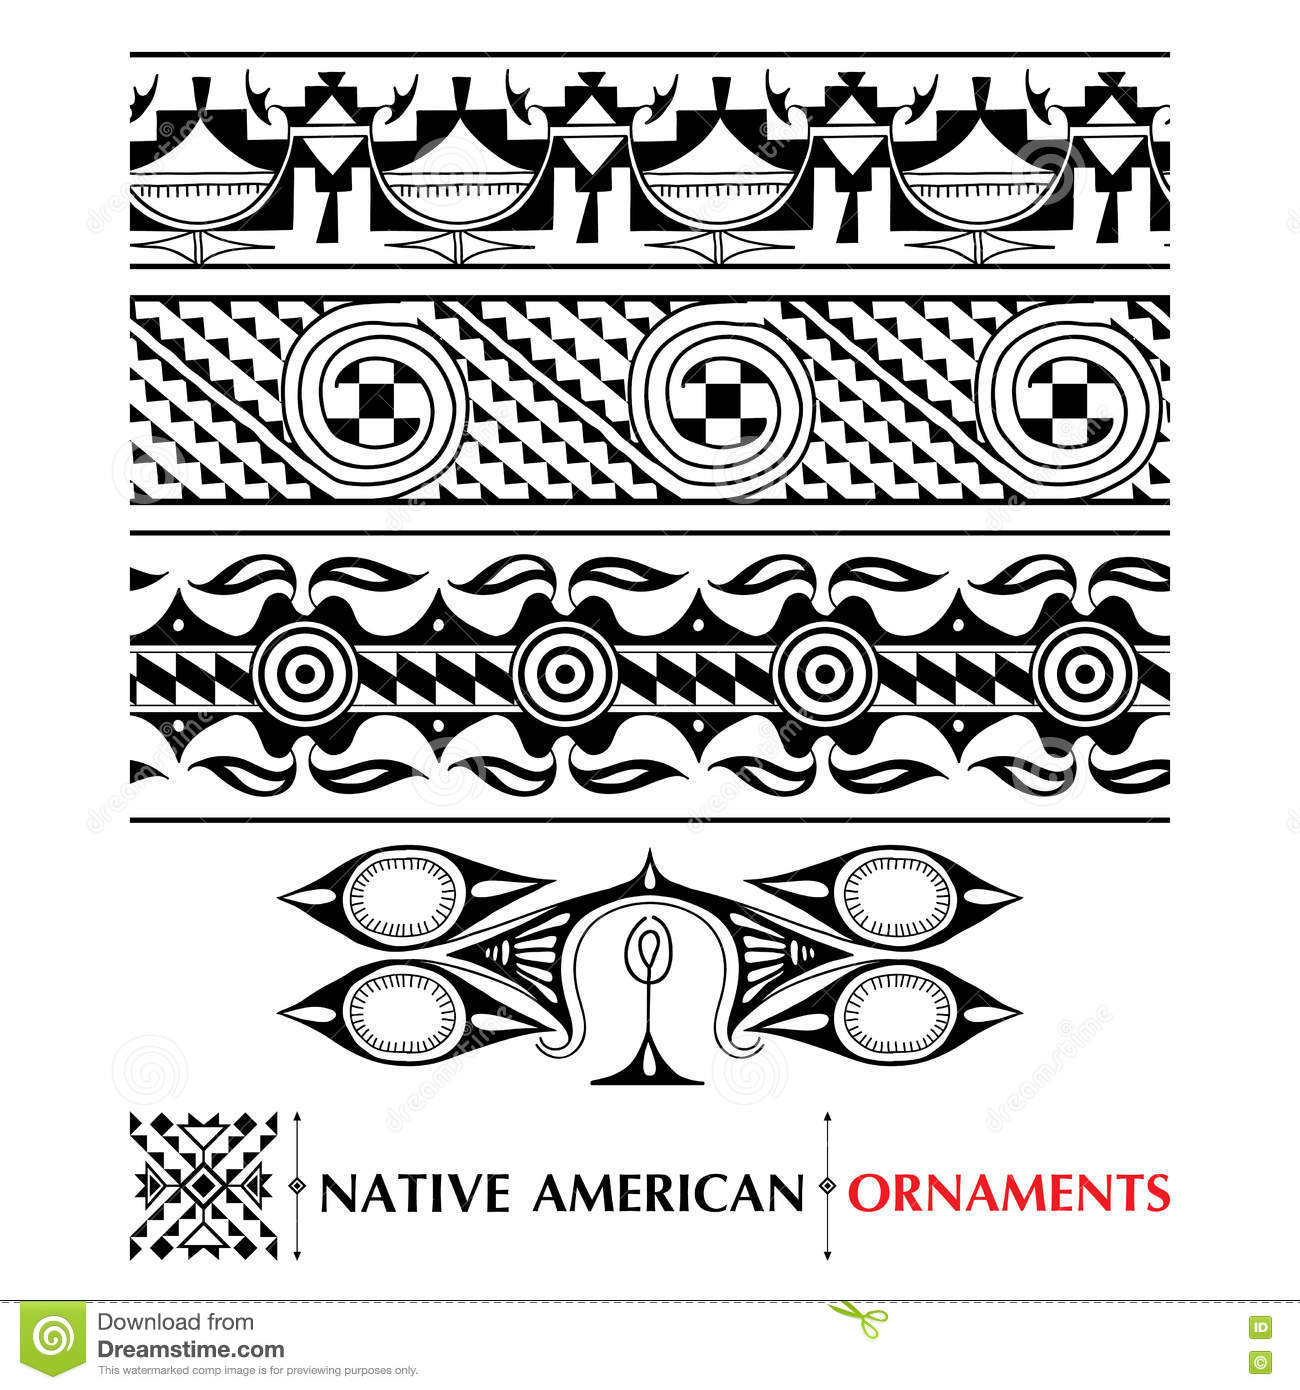 Native american ornaments - Vector Collection With Native American Seamless Pattern Isolated On White Background Ethnic Ornaments And Borders